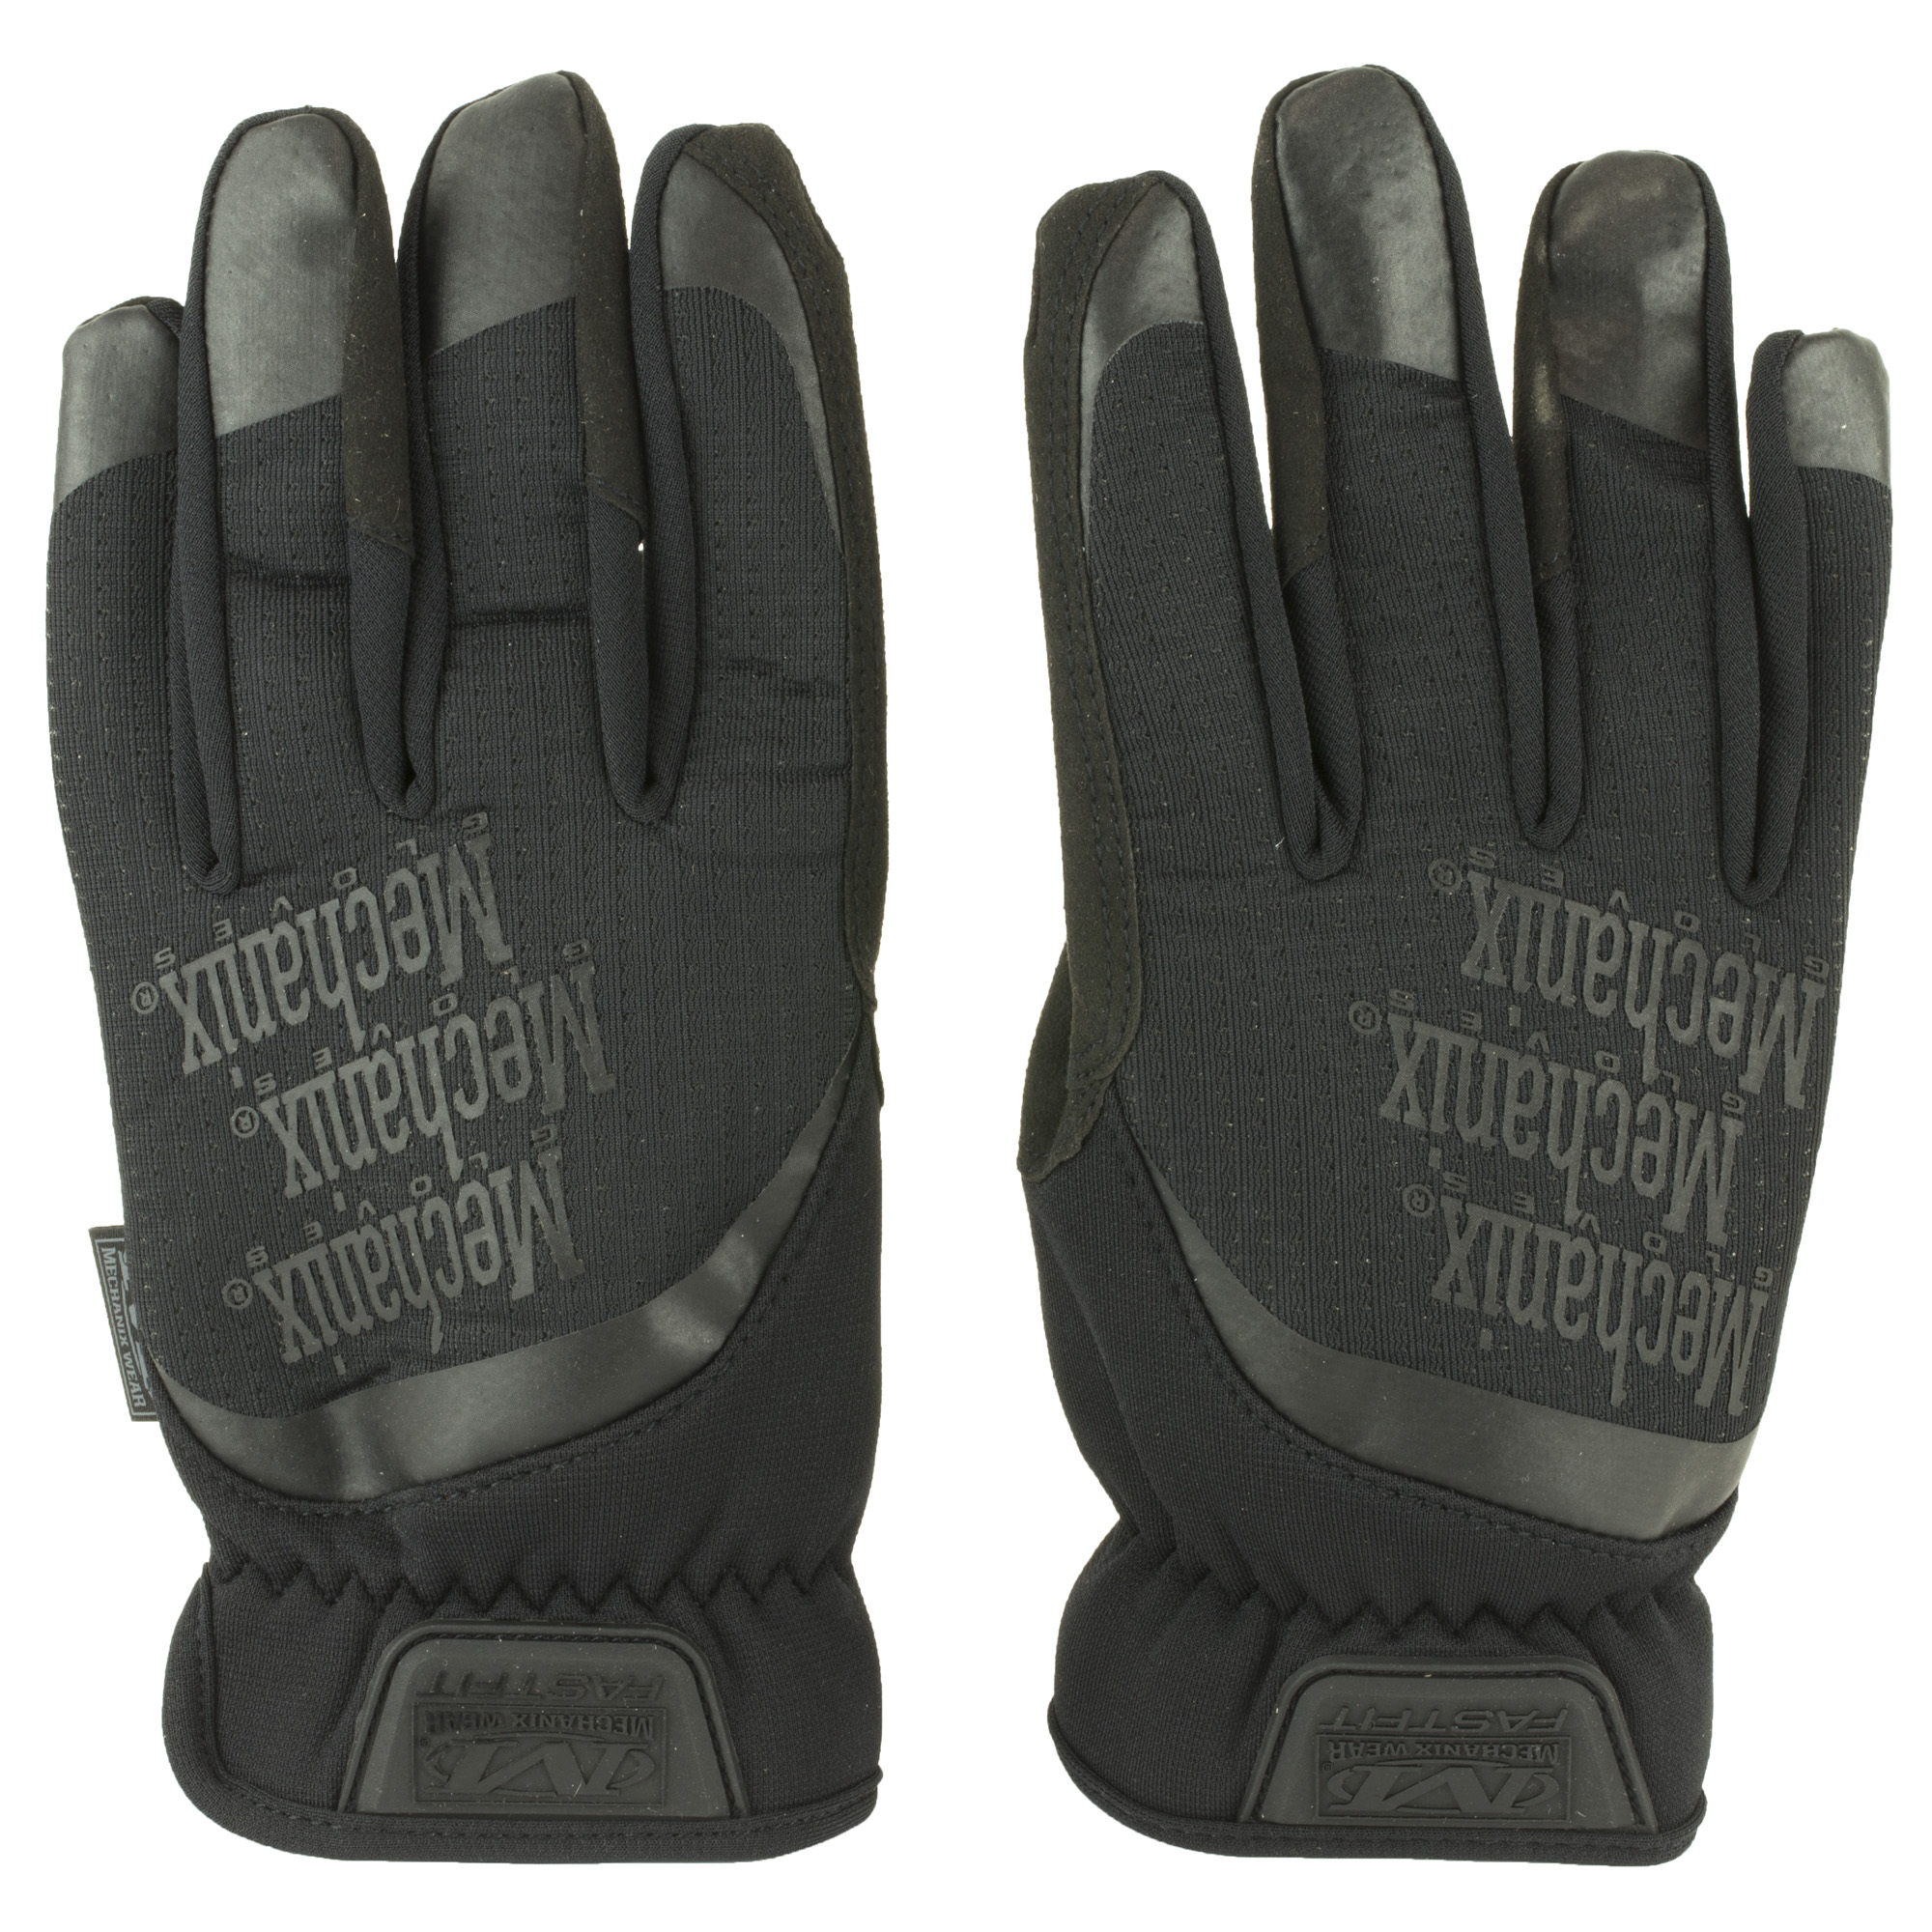 """The next generation of FastFit(R) tactical gloves are here. Take control with high-dexterity 0.6mm synthetic leather and stay connected with full touchscreen technology in the palm of your hands. The FastFit delivers an unmatched fit with TrekDry(TM) evaporative cooling"""" and rugged carrier loops for storage in the field."""